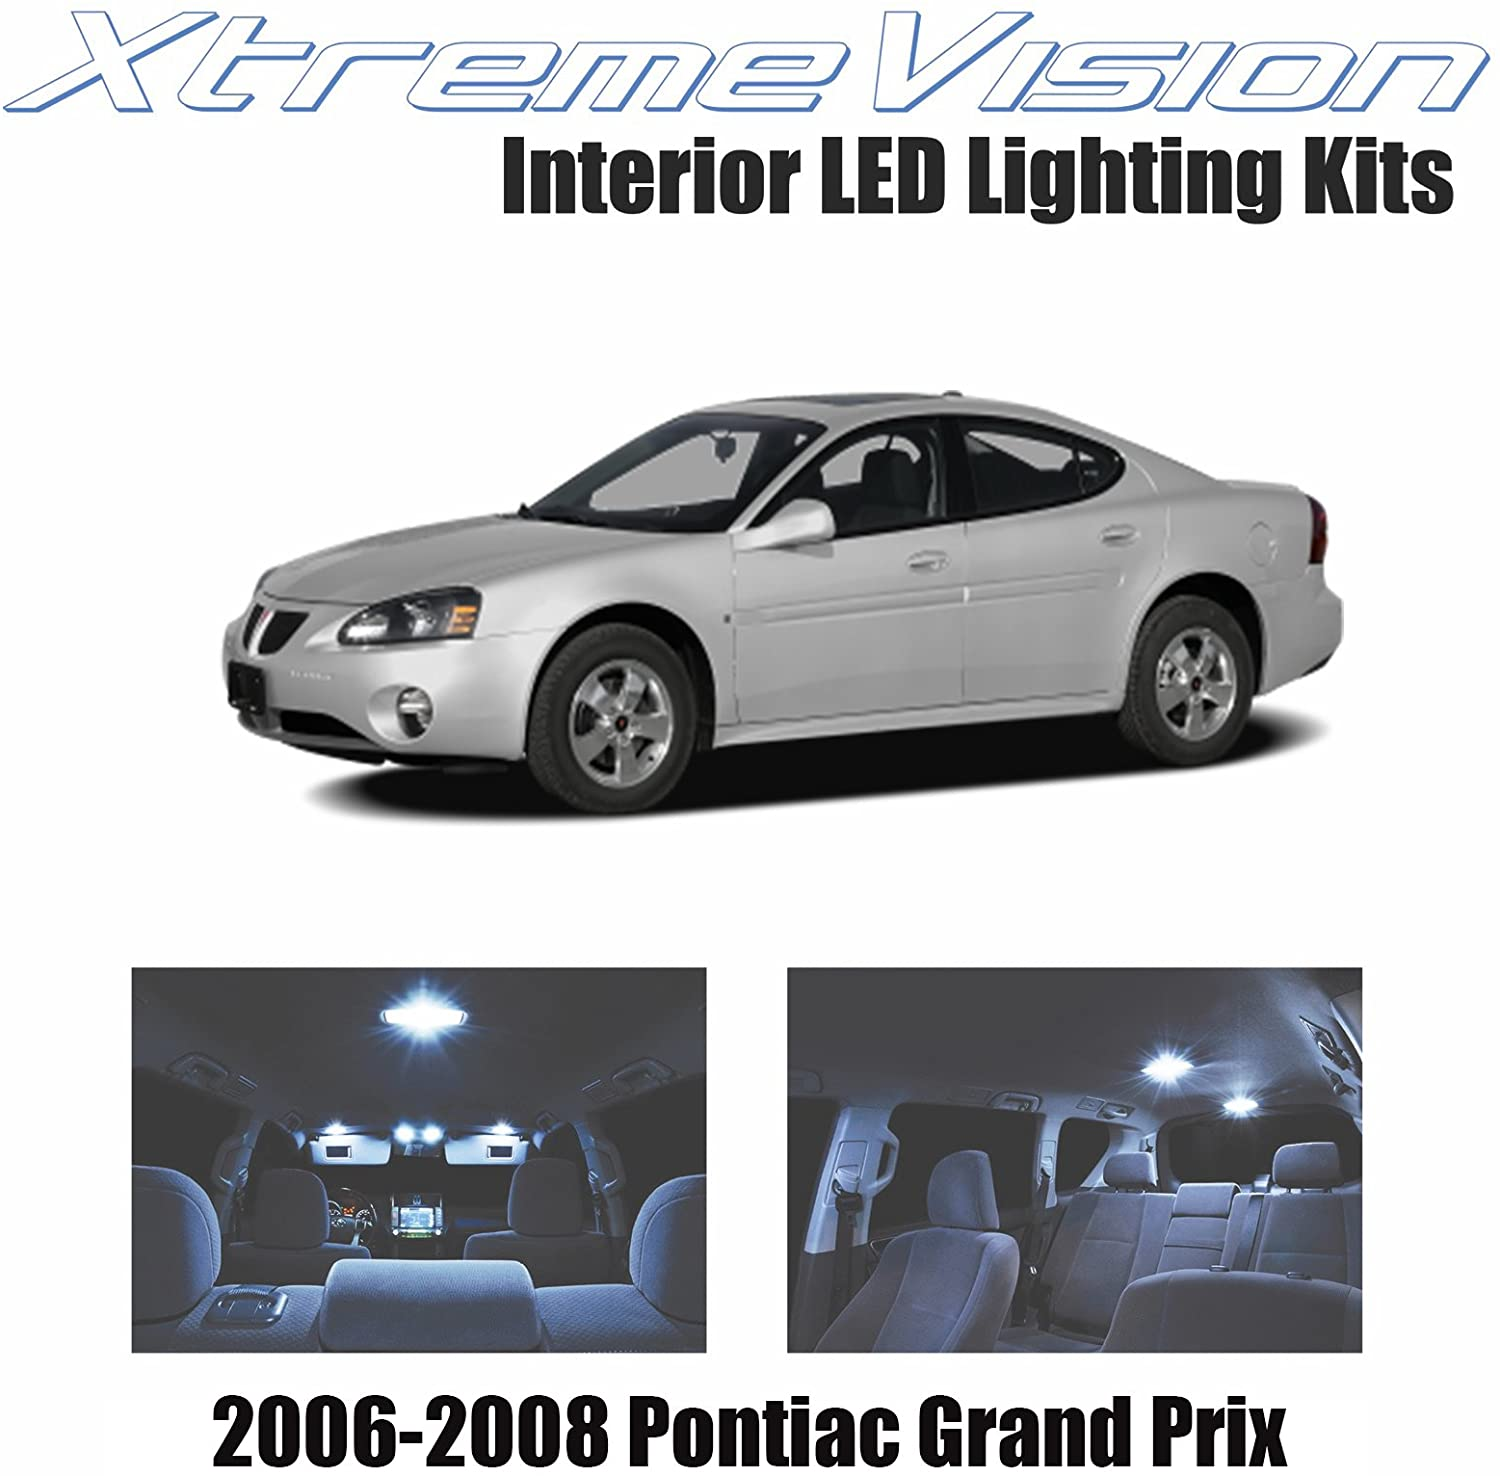 XtremeVision Interior LED for Pontiac Grand Prix 2006-2008 (8 Pieces) Cool White Interior LED Kit + Installation Tool